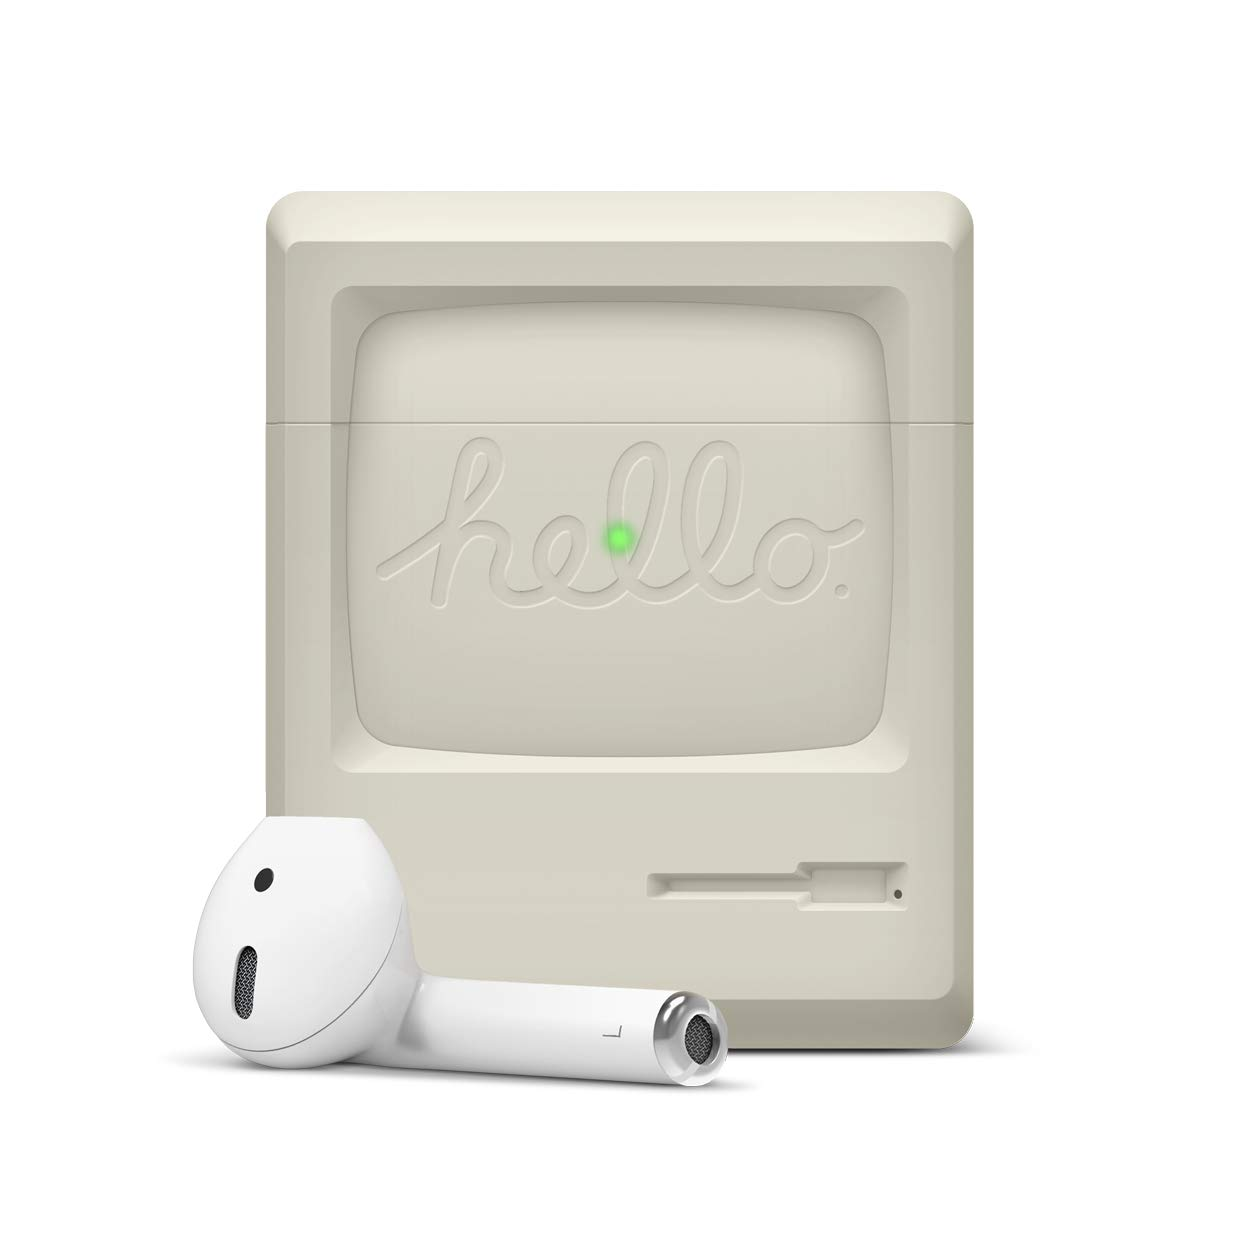 ویکالا · خرید  اصل اورجینال · خرید از آمازون · elago AW3 Designed for Airpods Case - Old-School Retro Design, Front LED Visible, No Hinge, Support Wireless Charging, Extra Protection - Compatible with AirPods 2&1 [US Patent Registered] wekala · ویکالا